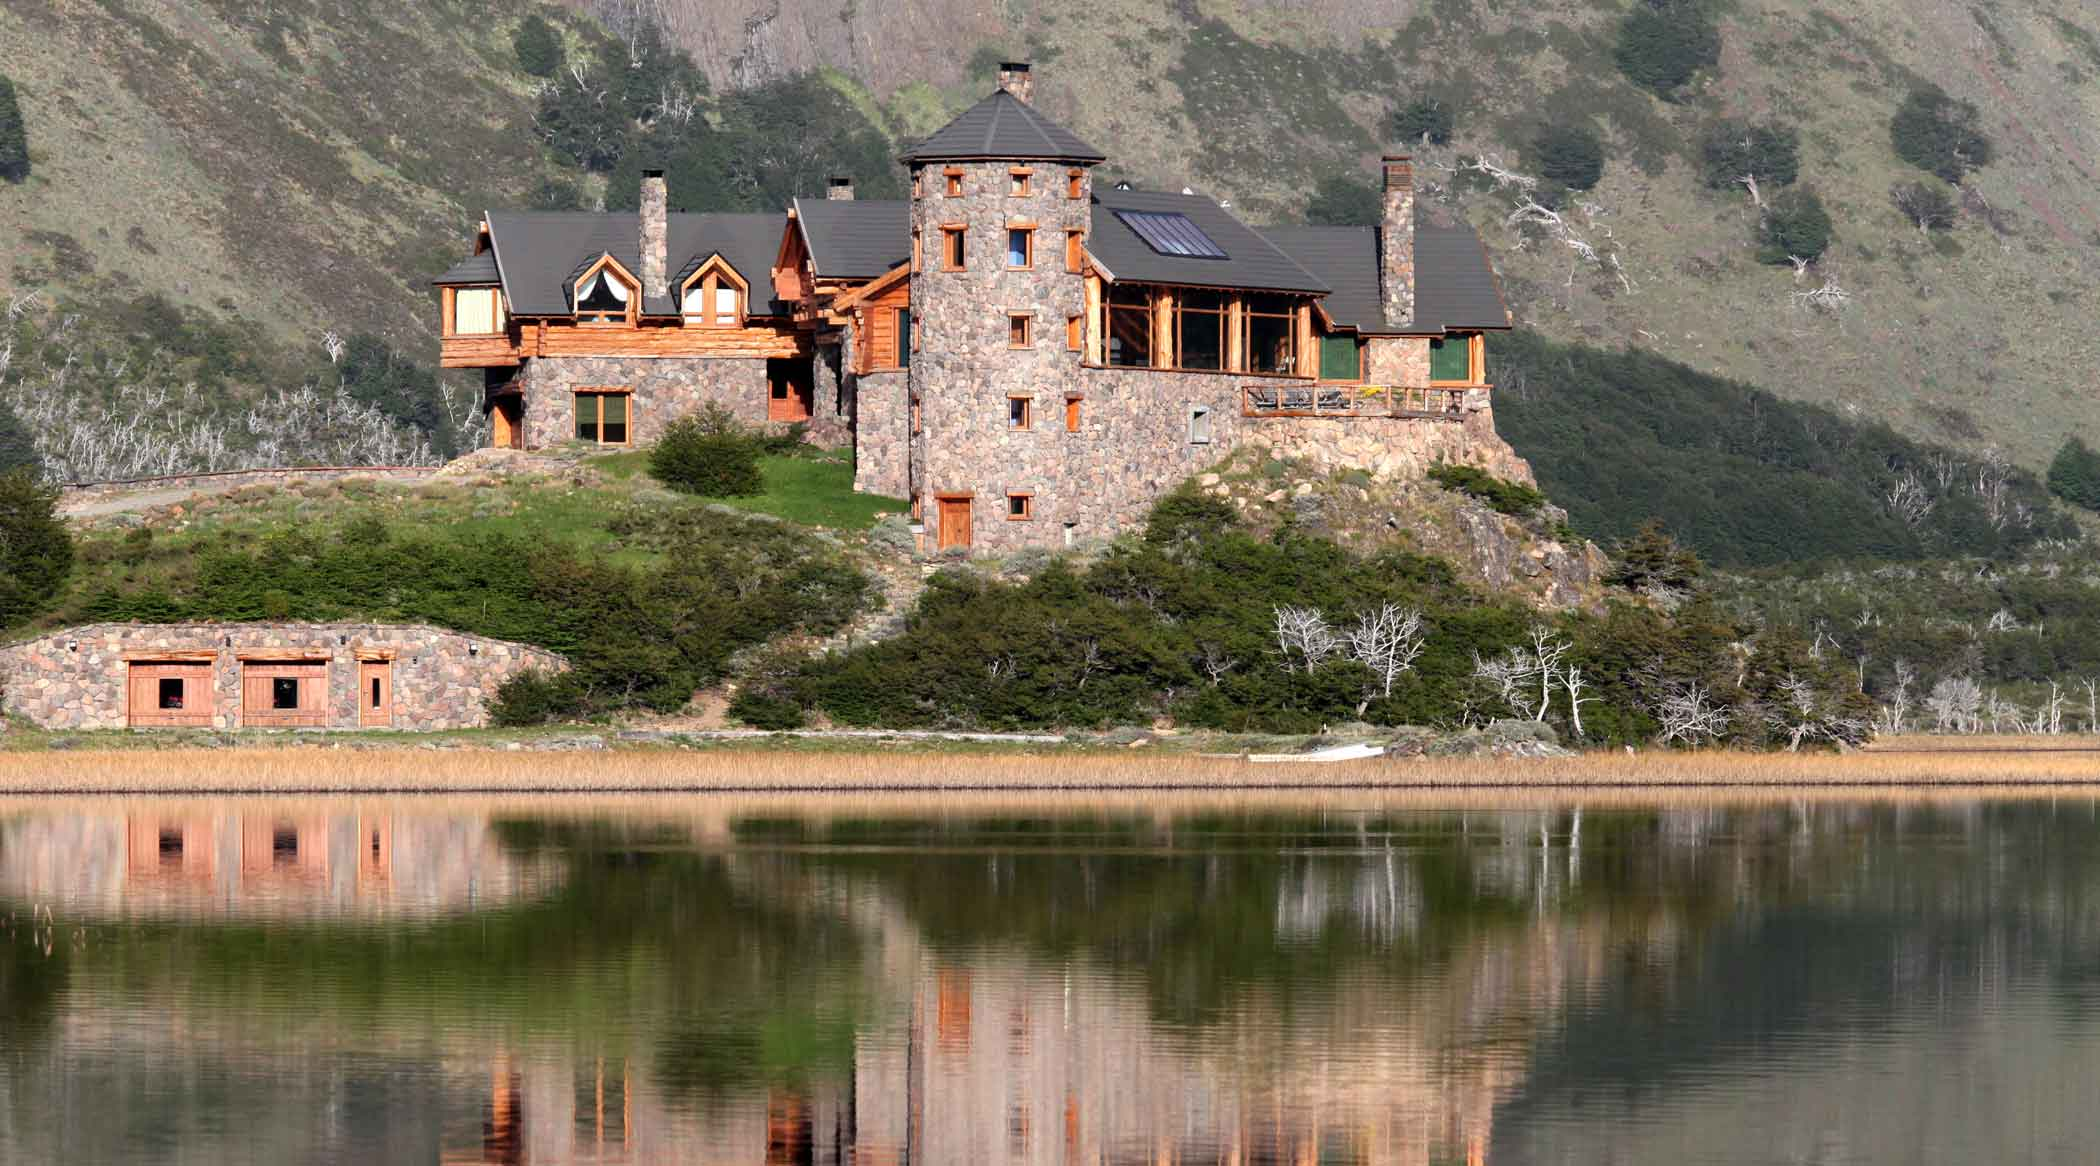 Ultra-private and ultra-luxury, this Patagonian lakefront retreat rests amid a private 6,040-acre eco preserve in the foothills of the Andes mountains.